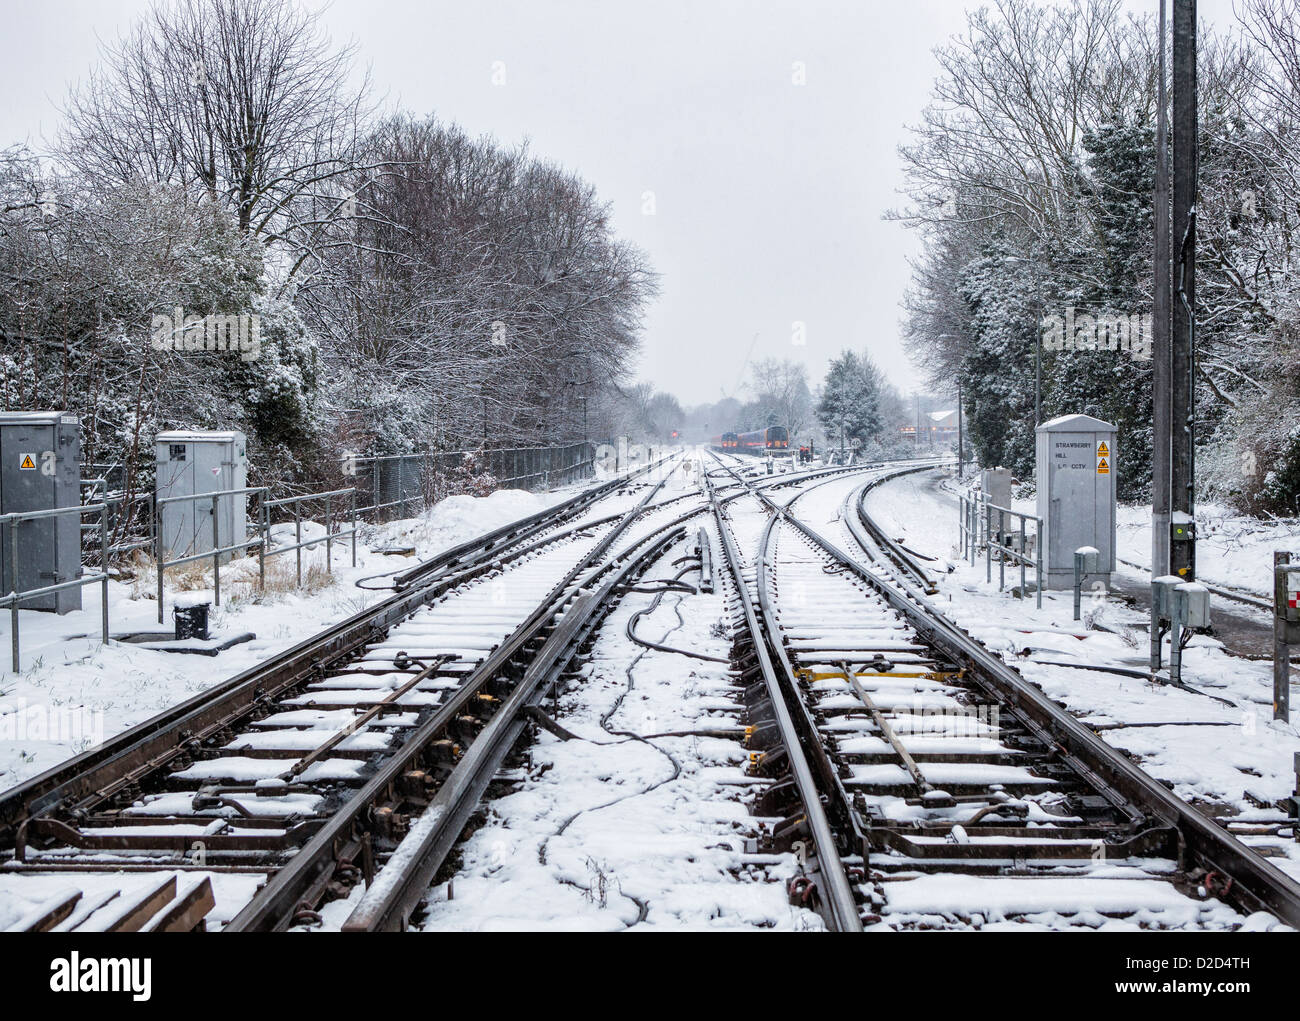 Snow covered railway lines at the Strawberry Hill Rail Station after a winter snow fall<snow on the tracks - - Stock Image